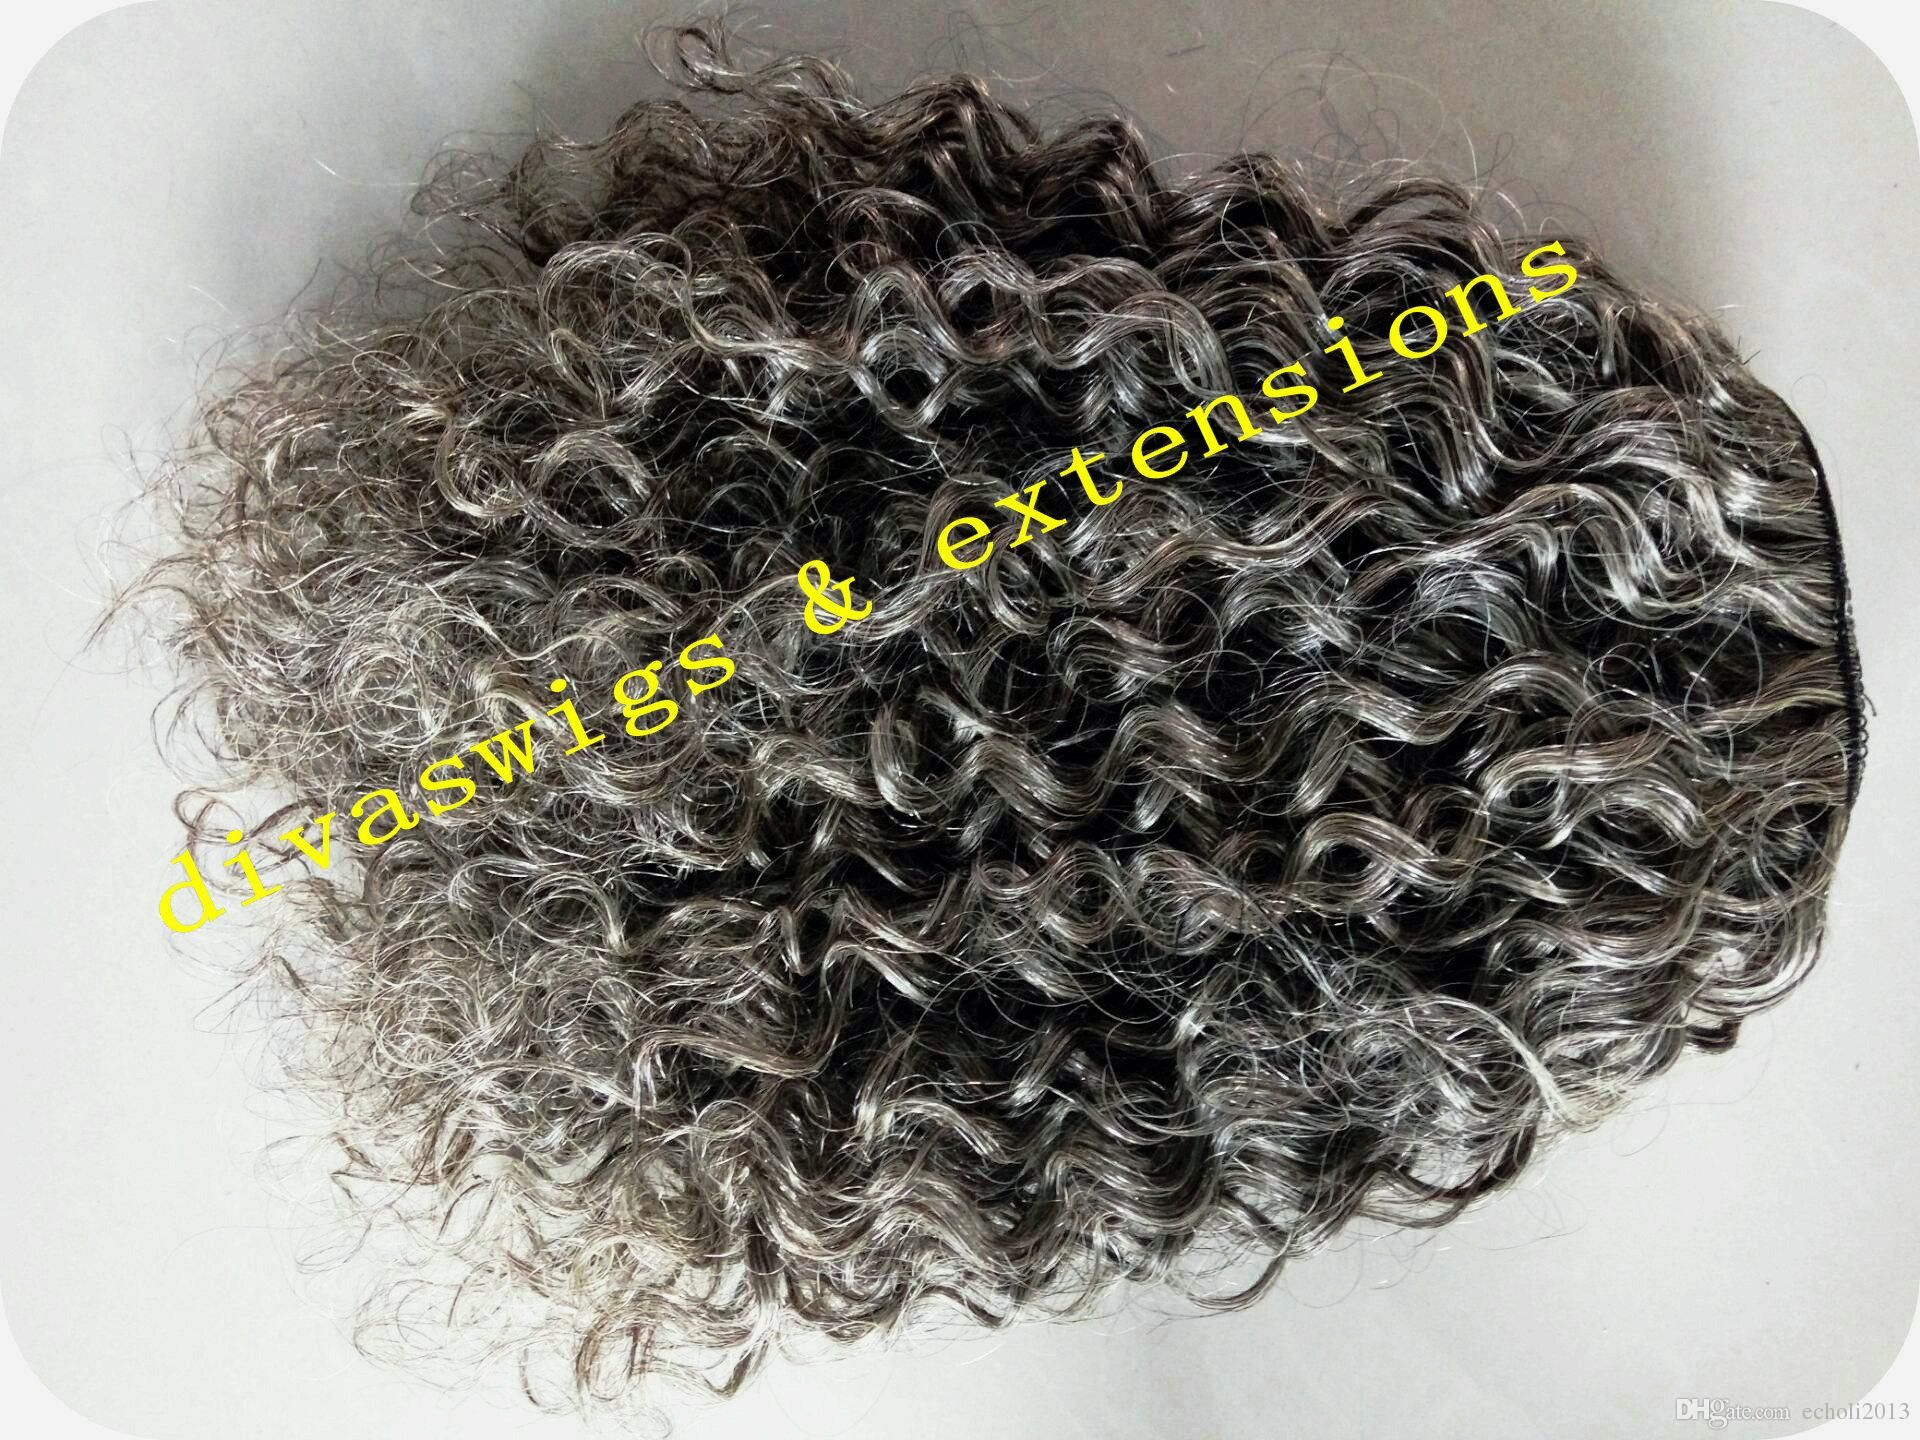 100% Real Hair Gray Puff Afro Ponytail Hair Extension Clip In Remy Afro Kinky Curly Drawstring Ponytails Grey Hair Extension 120g Hairstyles In Ponytails Hairstyles With Ponytail From Echoli2013, $46.74| DHgate.Com